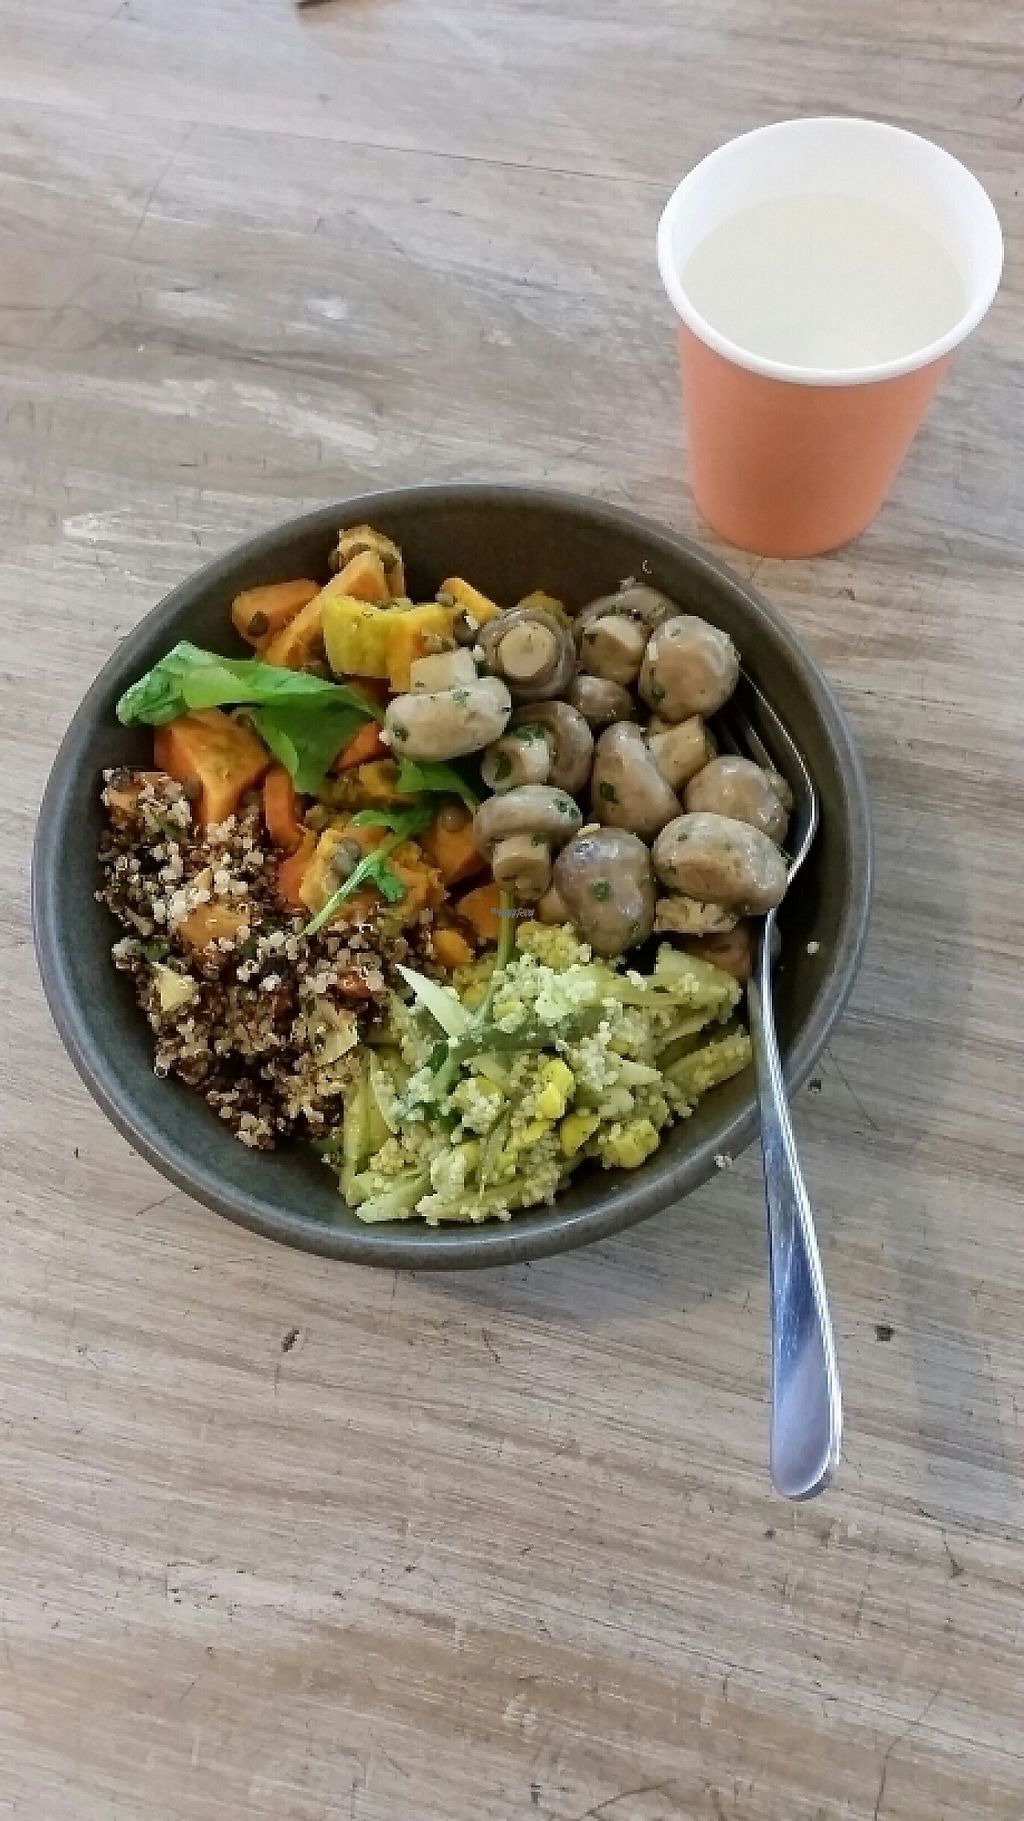 "Photo of The Wholefood Kitchen  by <a href=""/members/profile/AndyTheVWDude"">AndyTheVWDude</a> <br/>Warmed button mushrooms & mixed salad bowl <br/> March 21, 2017  - <a href='/contact/abuse/image/25063/239040'>Report</a>"